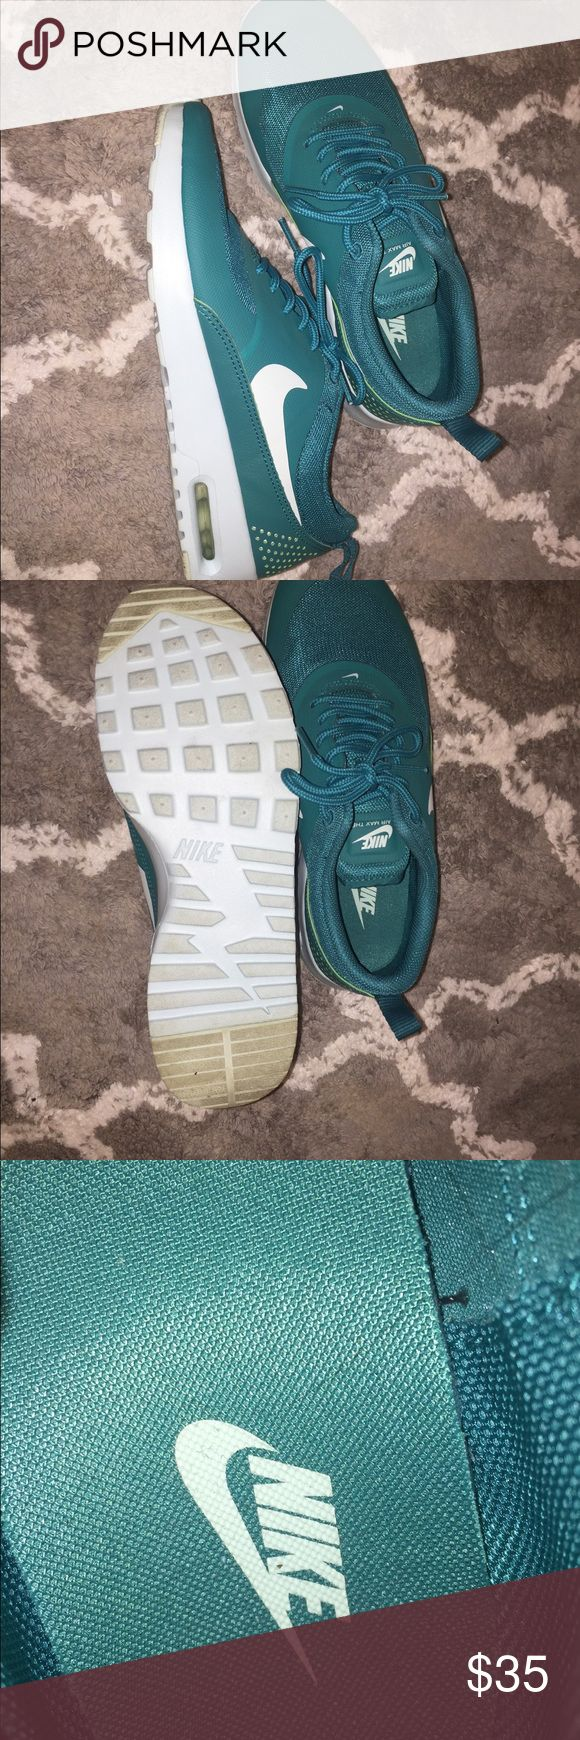 Nike Air Max Thea Nike Air Max Thea | Worn Once Nike Shoes Sneakers